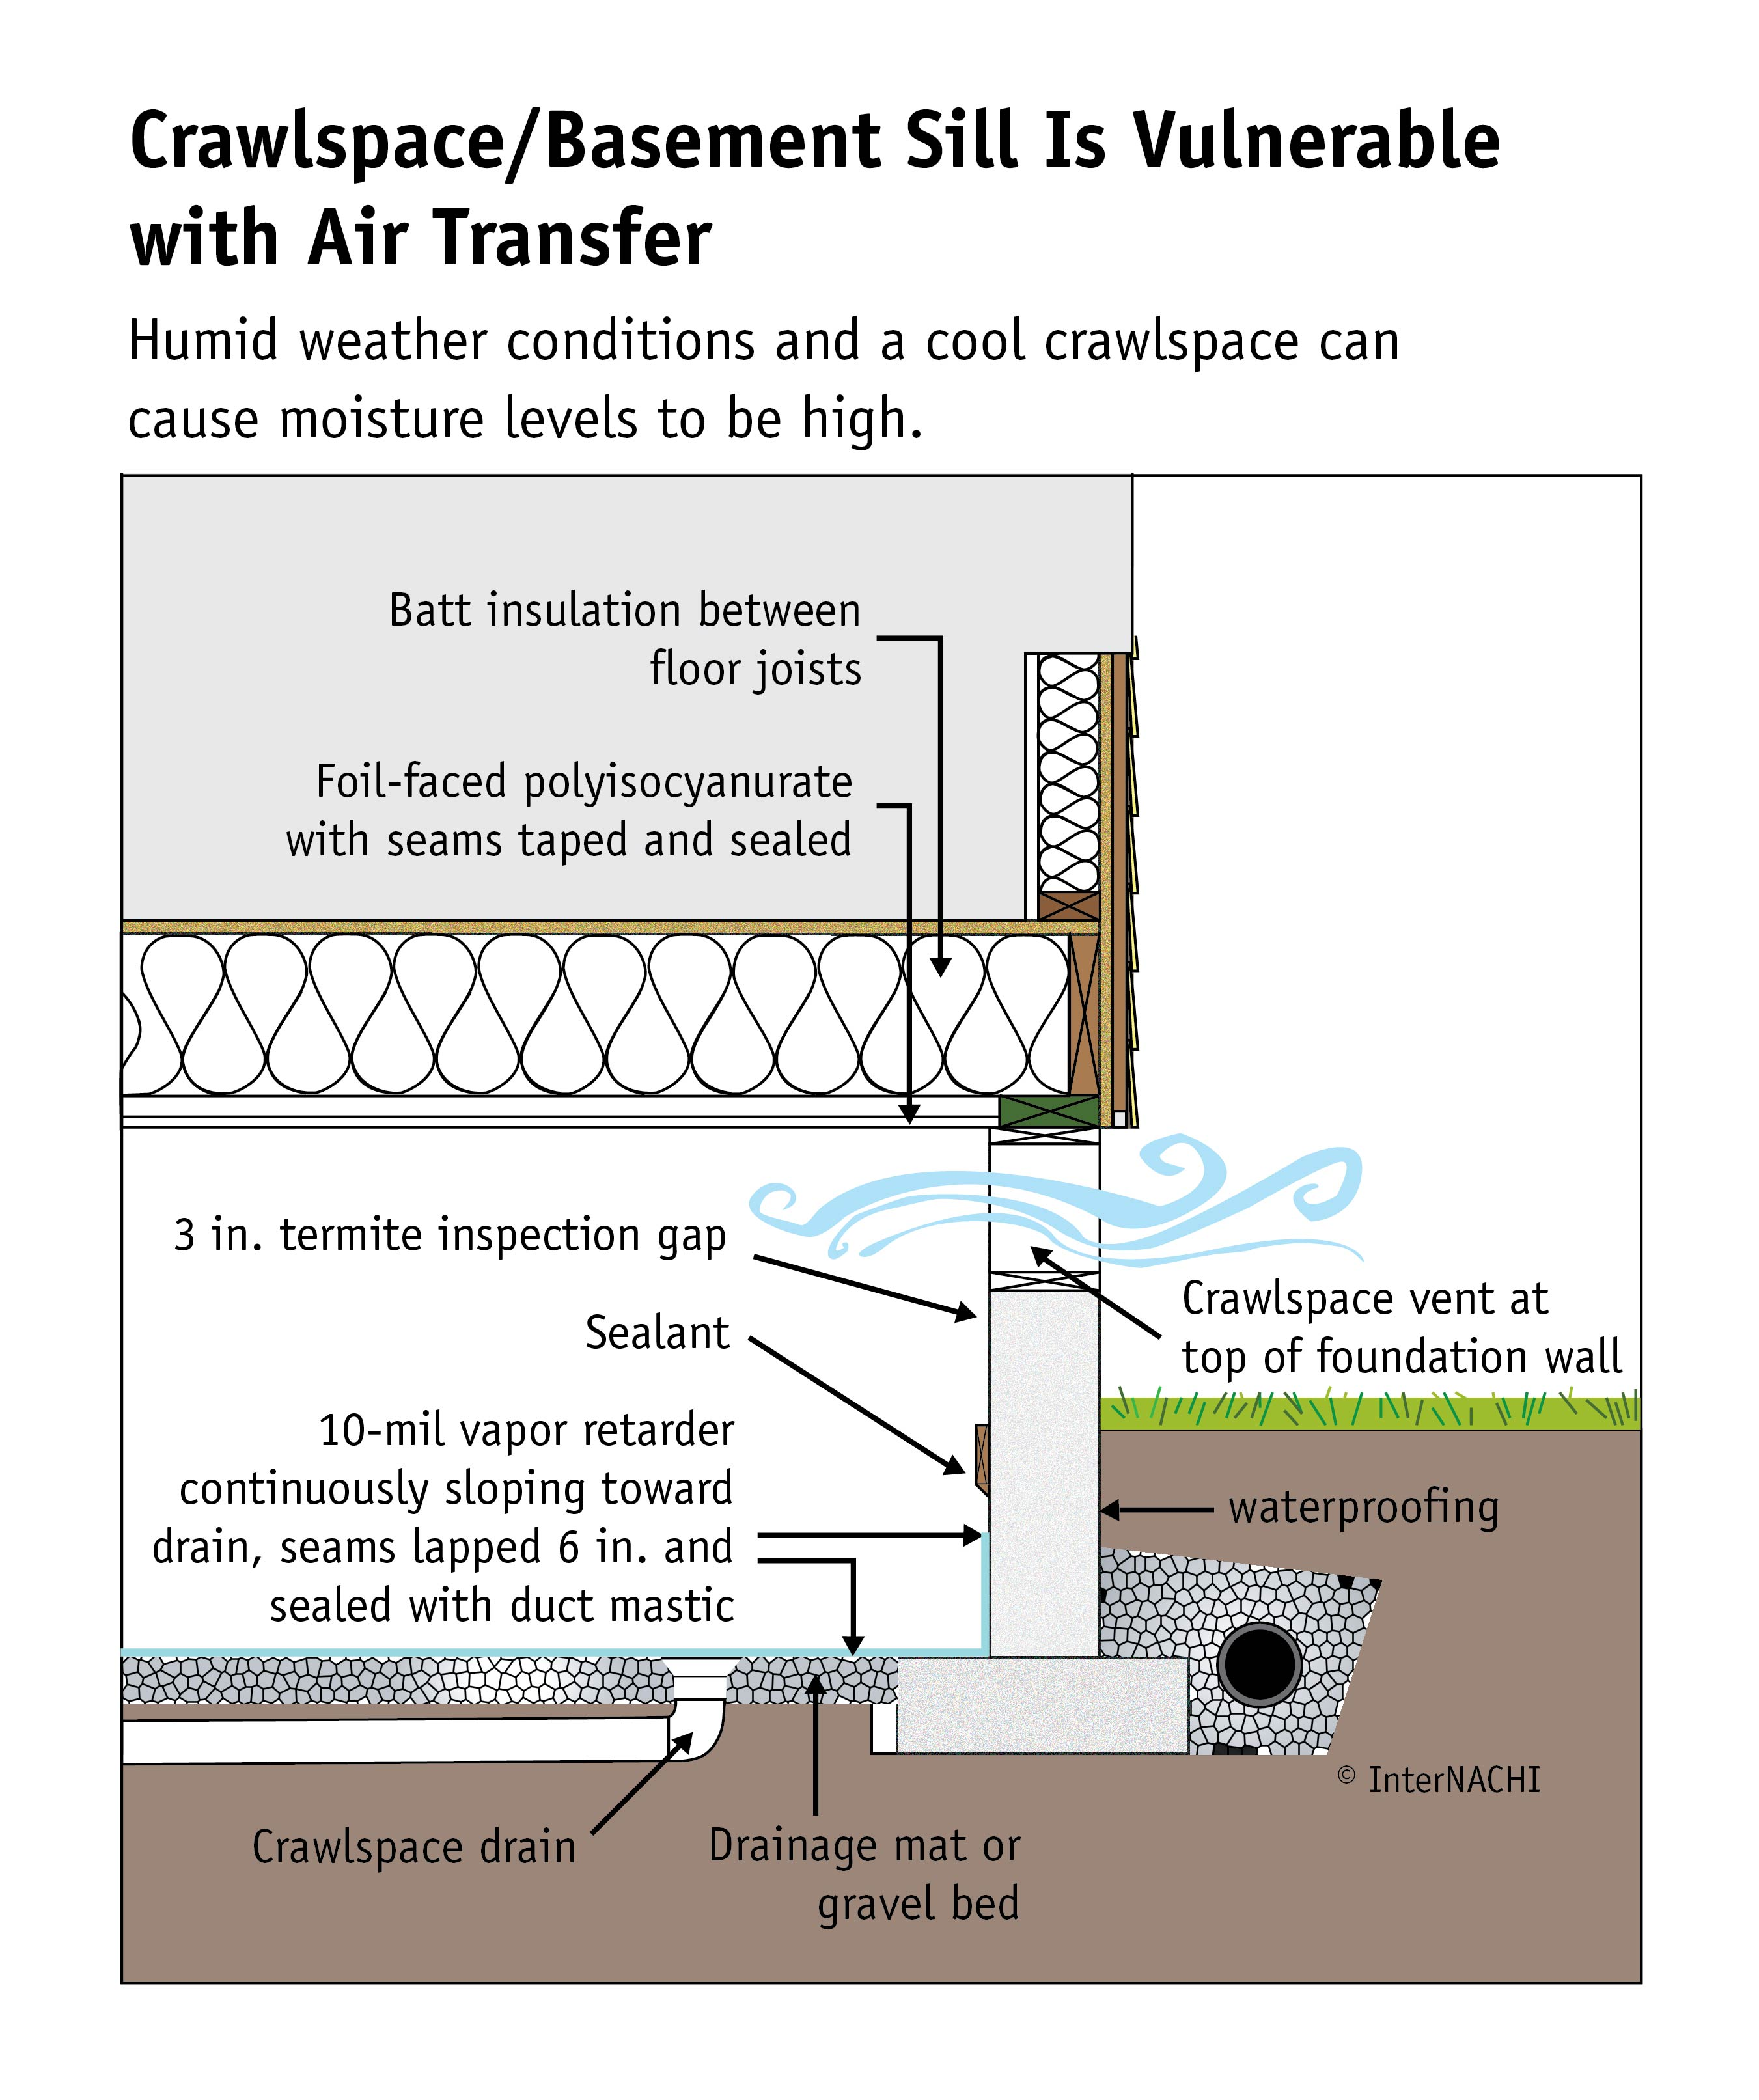 Crawlspace/basement sill is vulnerable.